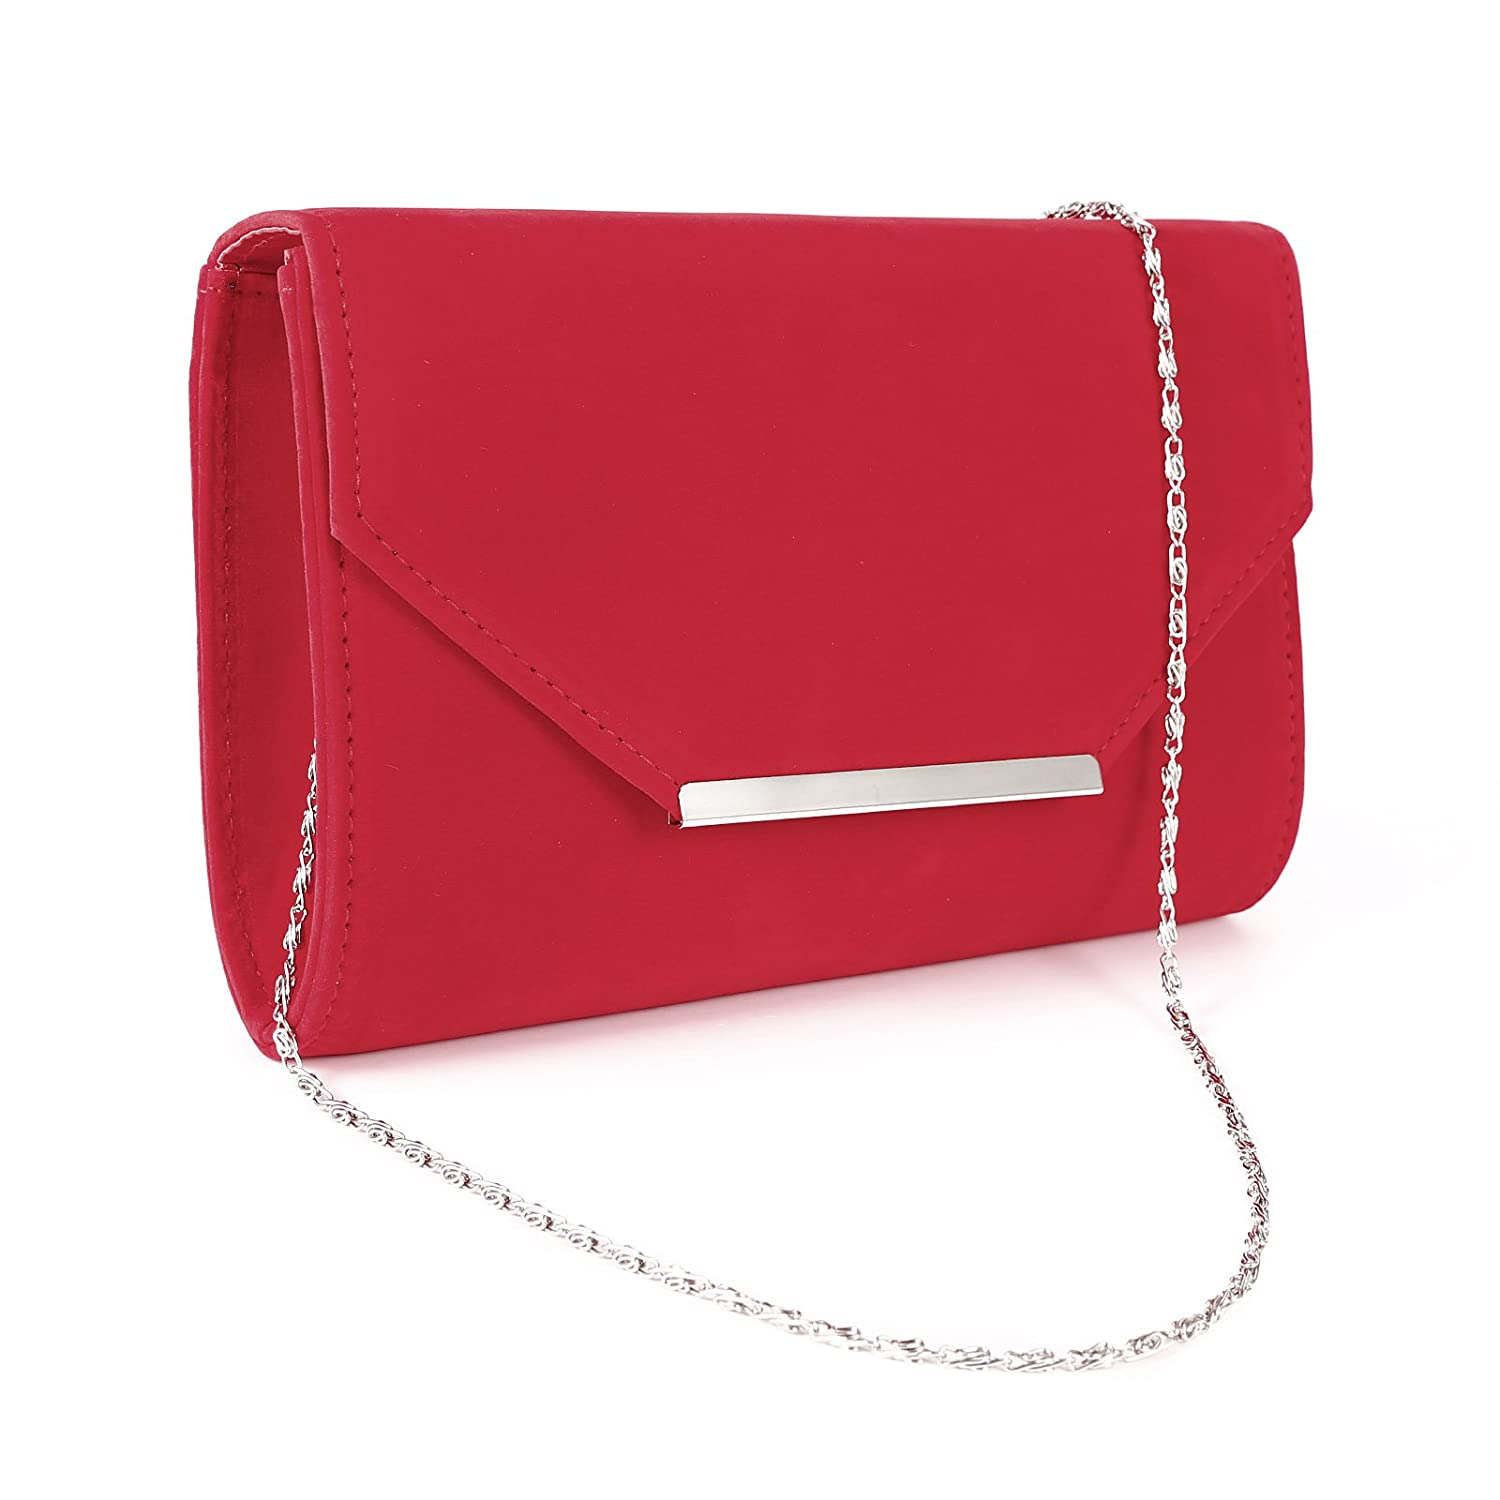 Anladia Envelope Flap-Top Silver-Tone Metal Bar Velvet Clutch Women Chain Strap Handbag